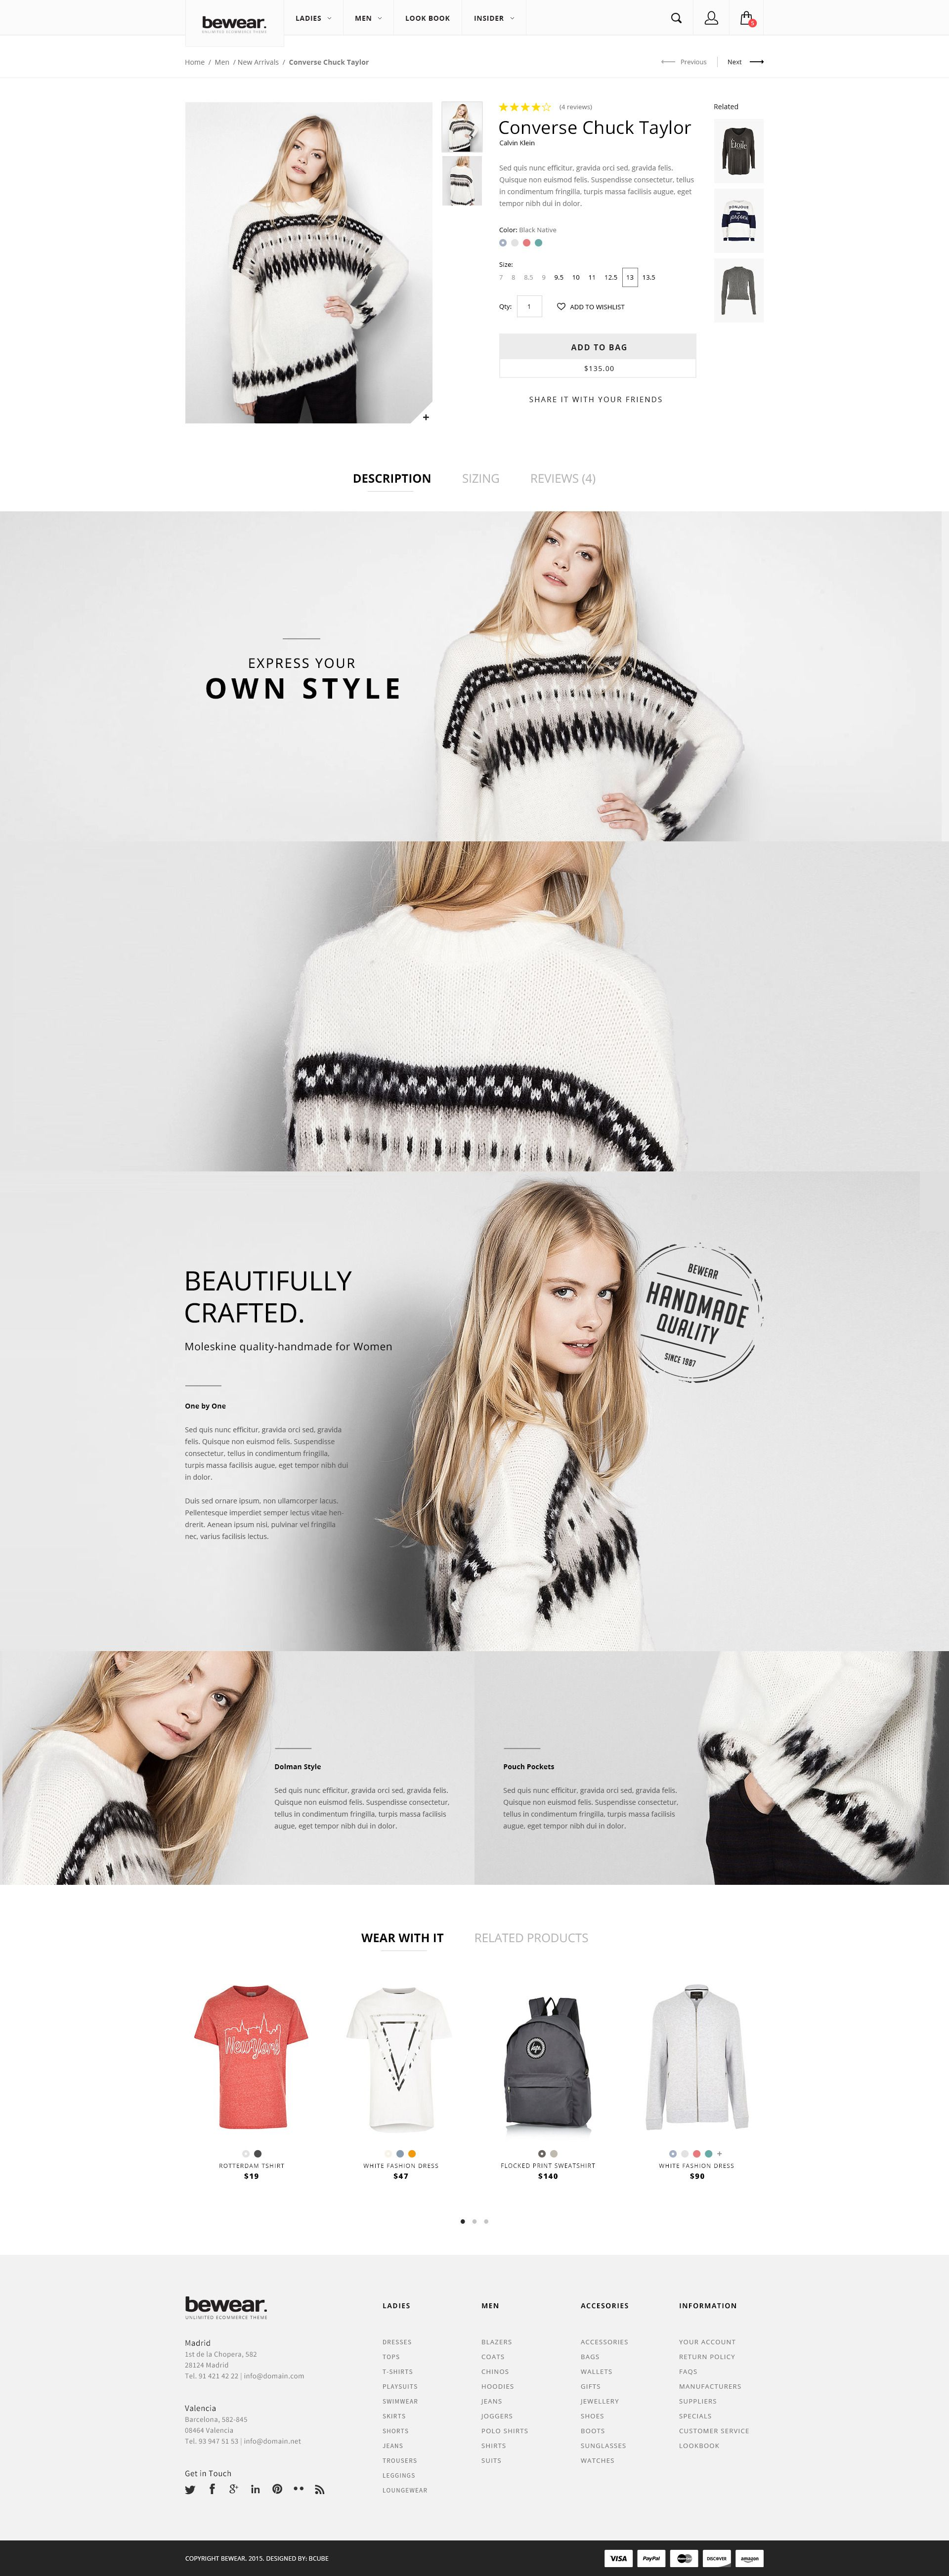 Bewear - Lookbook Style eCommerce PSD Template | // WebDesign ...